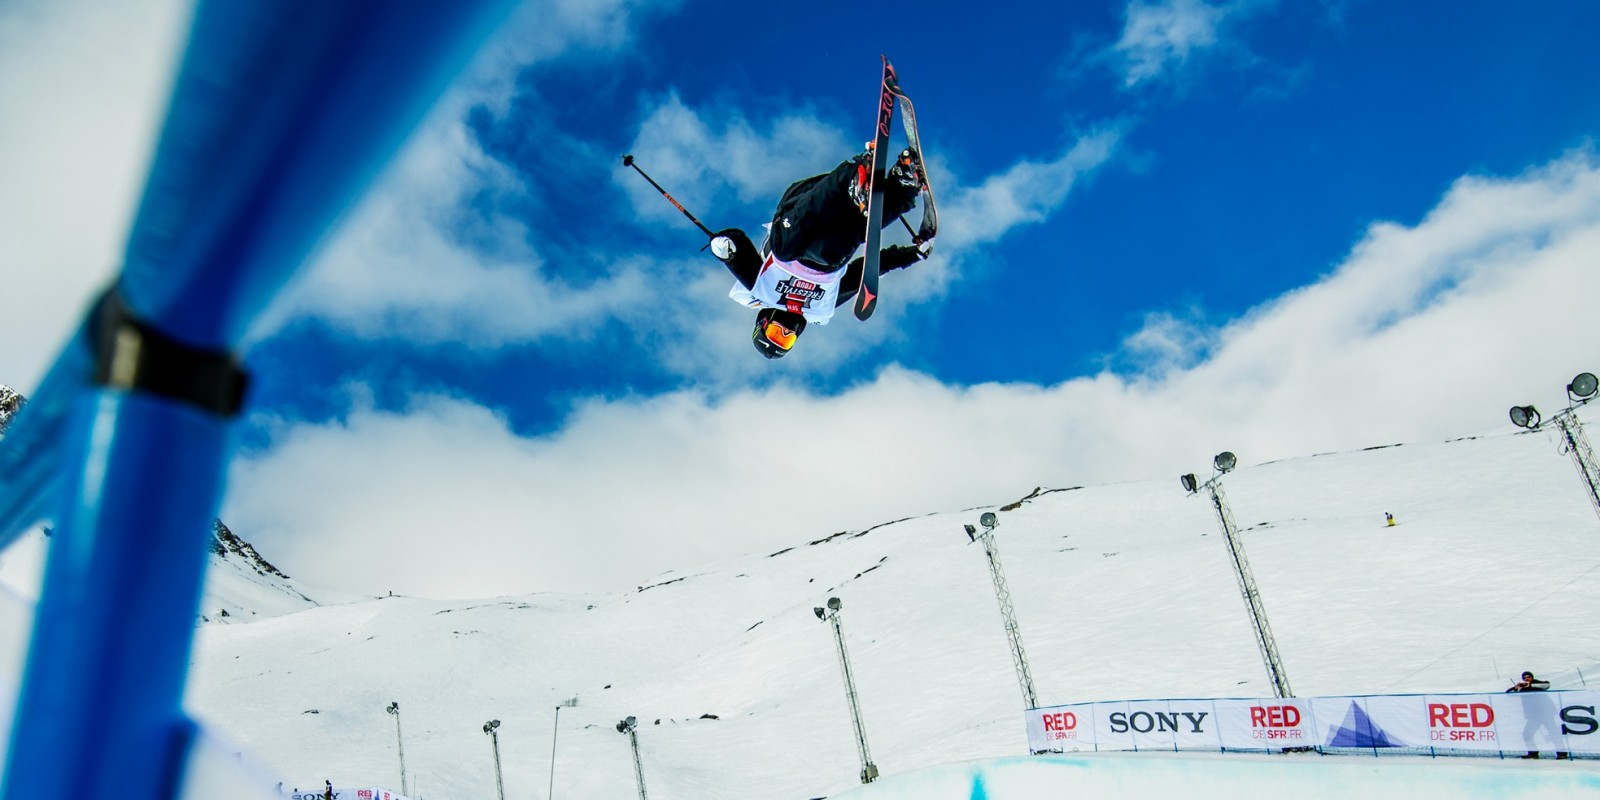 Gus Kenworthy competes in the 2015 World Cup Halfpipe Finals.